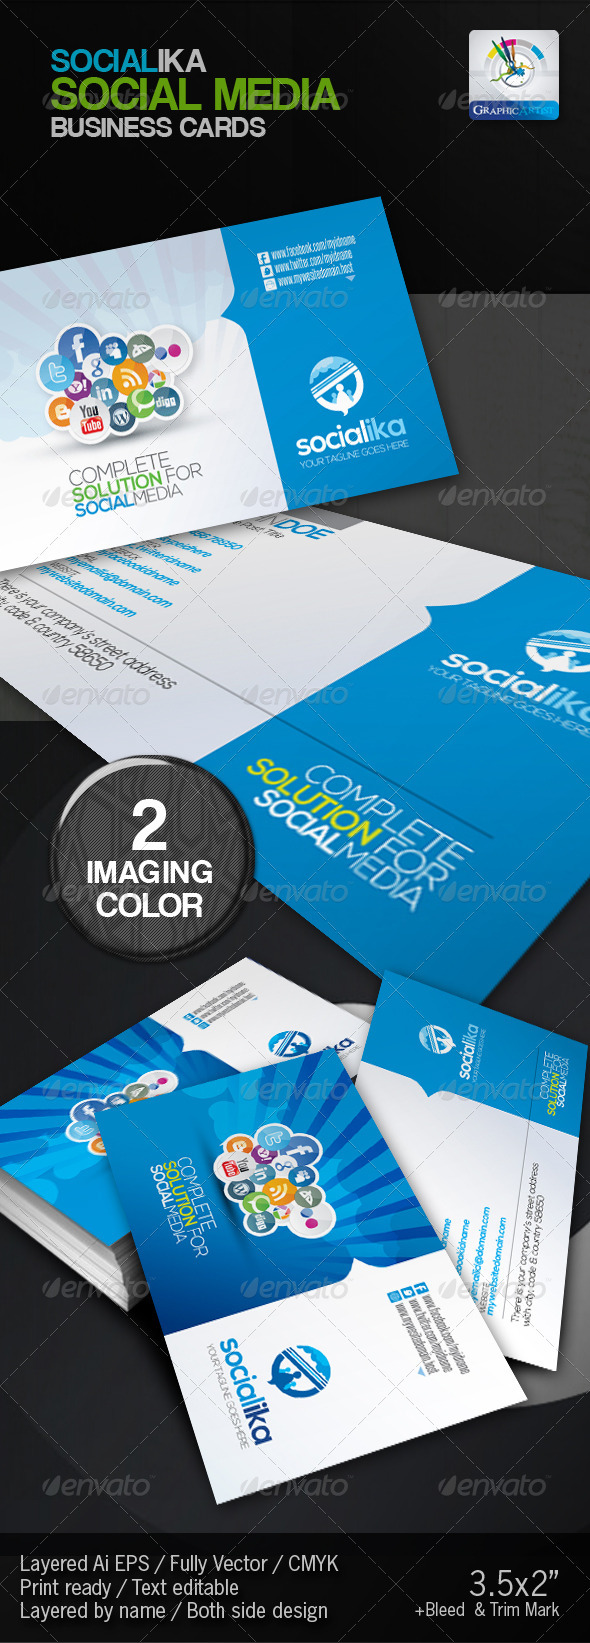 Socialika Social Media Business Card - Business Cards Print Templates